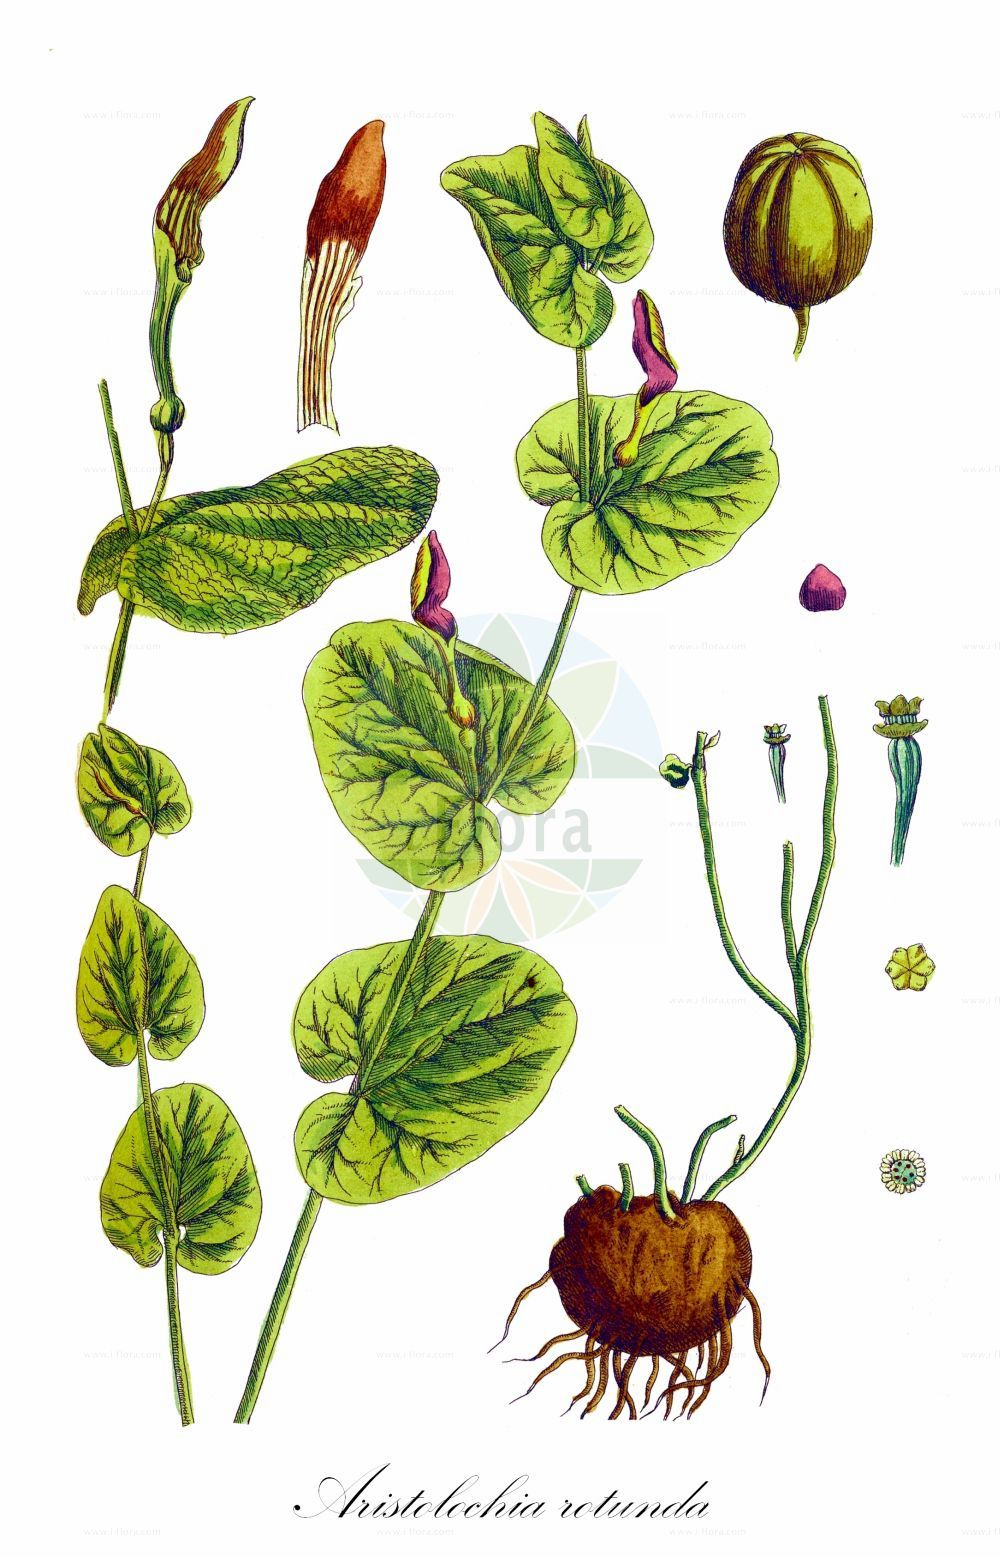 Historische Abbildung von Aristolochia rotunda. Das Bild zeigt Blatt, Bluete, Frucht und Same. ---- Historical Drawing of Aristolochia rotunda.The image is showing leaf, flower, fruit and seed.(Aristolochia rotunda,Aristolochia,Osterluzei,Birthwort,Aristolochiaceae,Osterluzeigewaechse,Birthwort family,Blatt,Bluete,Frucht,Same,leaf,flower,fruit,seed,Blackwell (1750-1773))